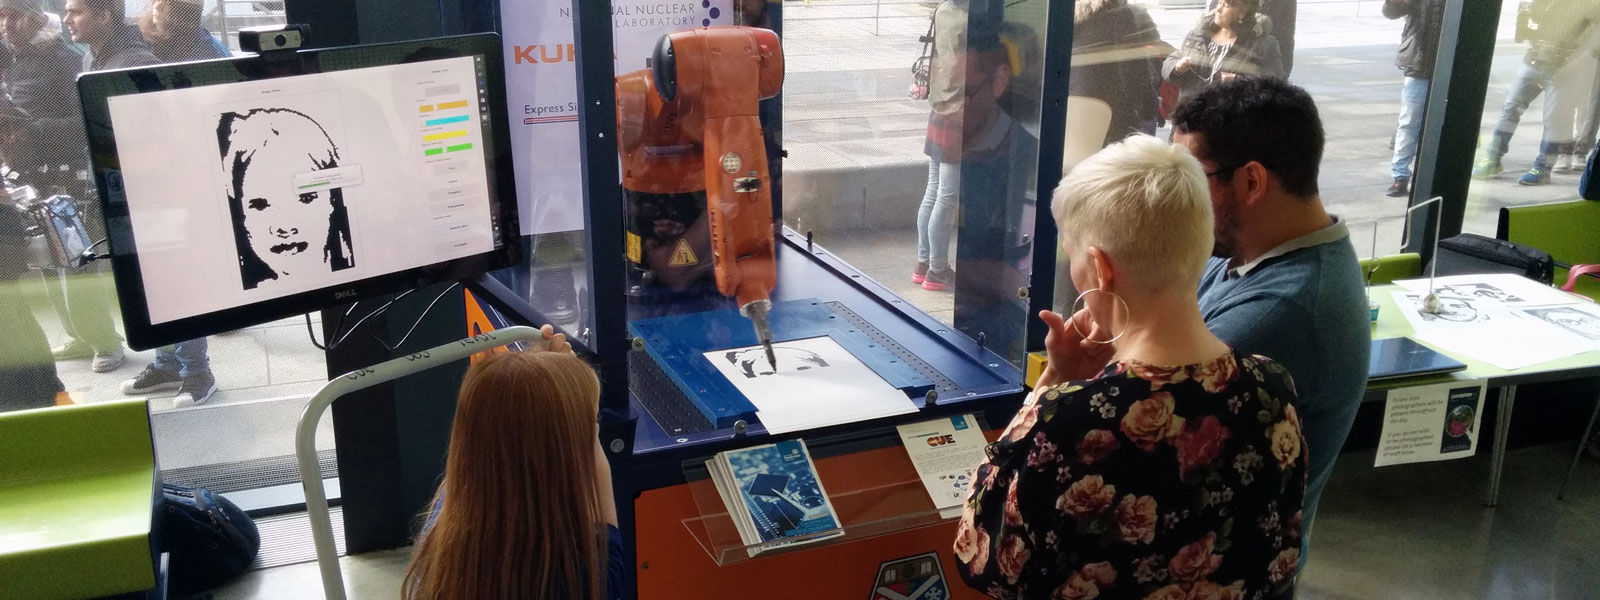 people standing looking at an orange robotic arm